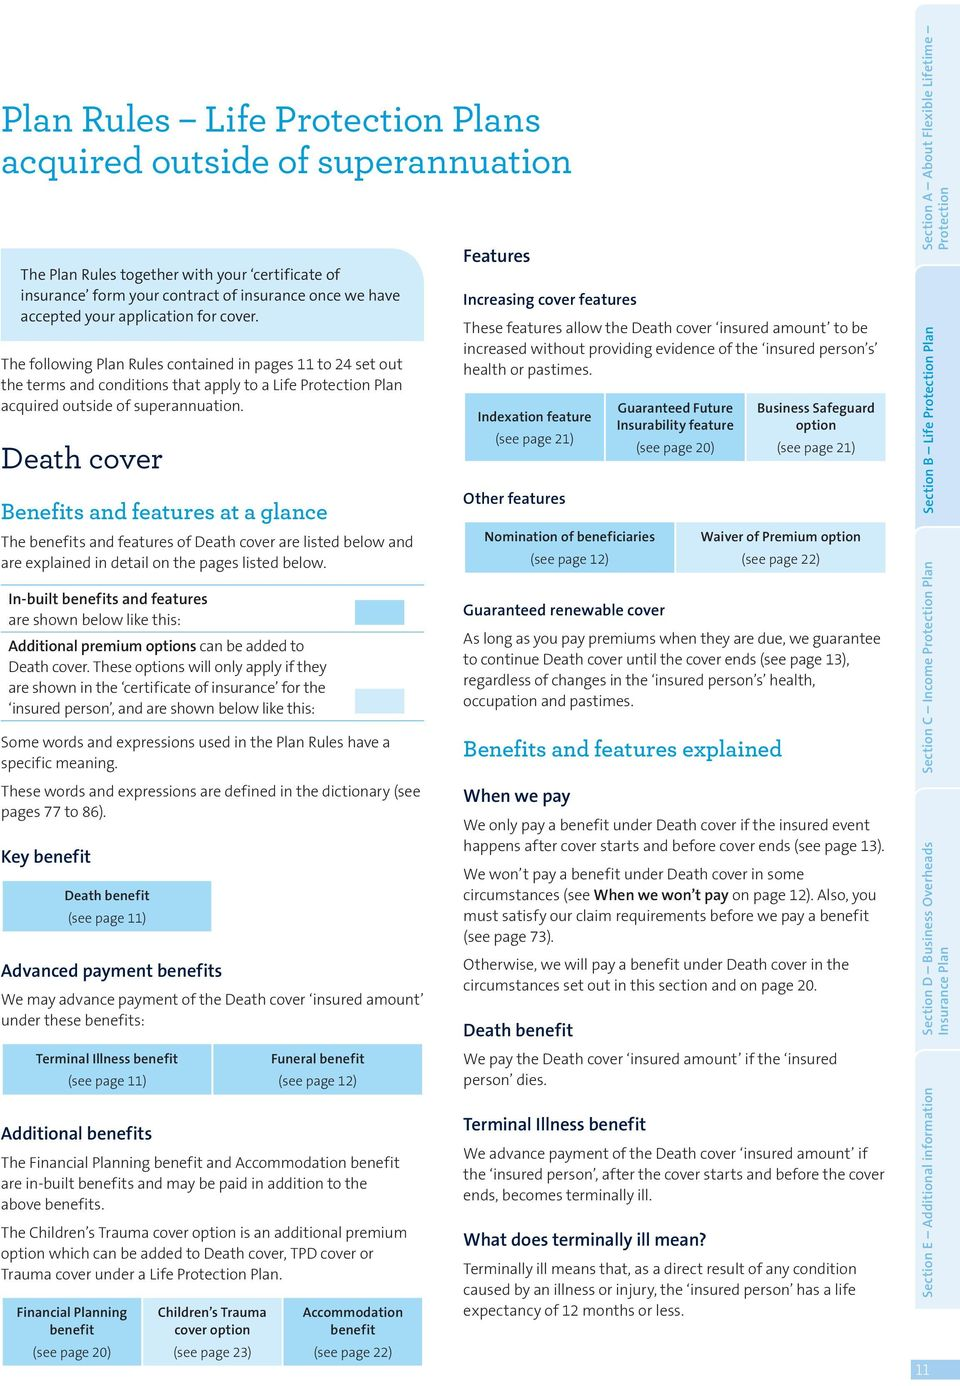 Death cover Benefits and features at a glance The benefits and features of Death cover are listed below and are explained in detail on the pages listed below.